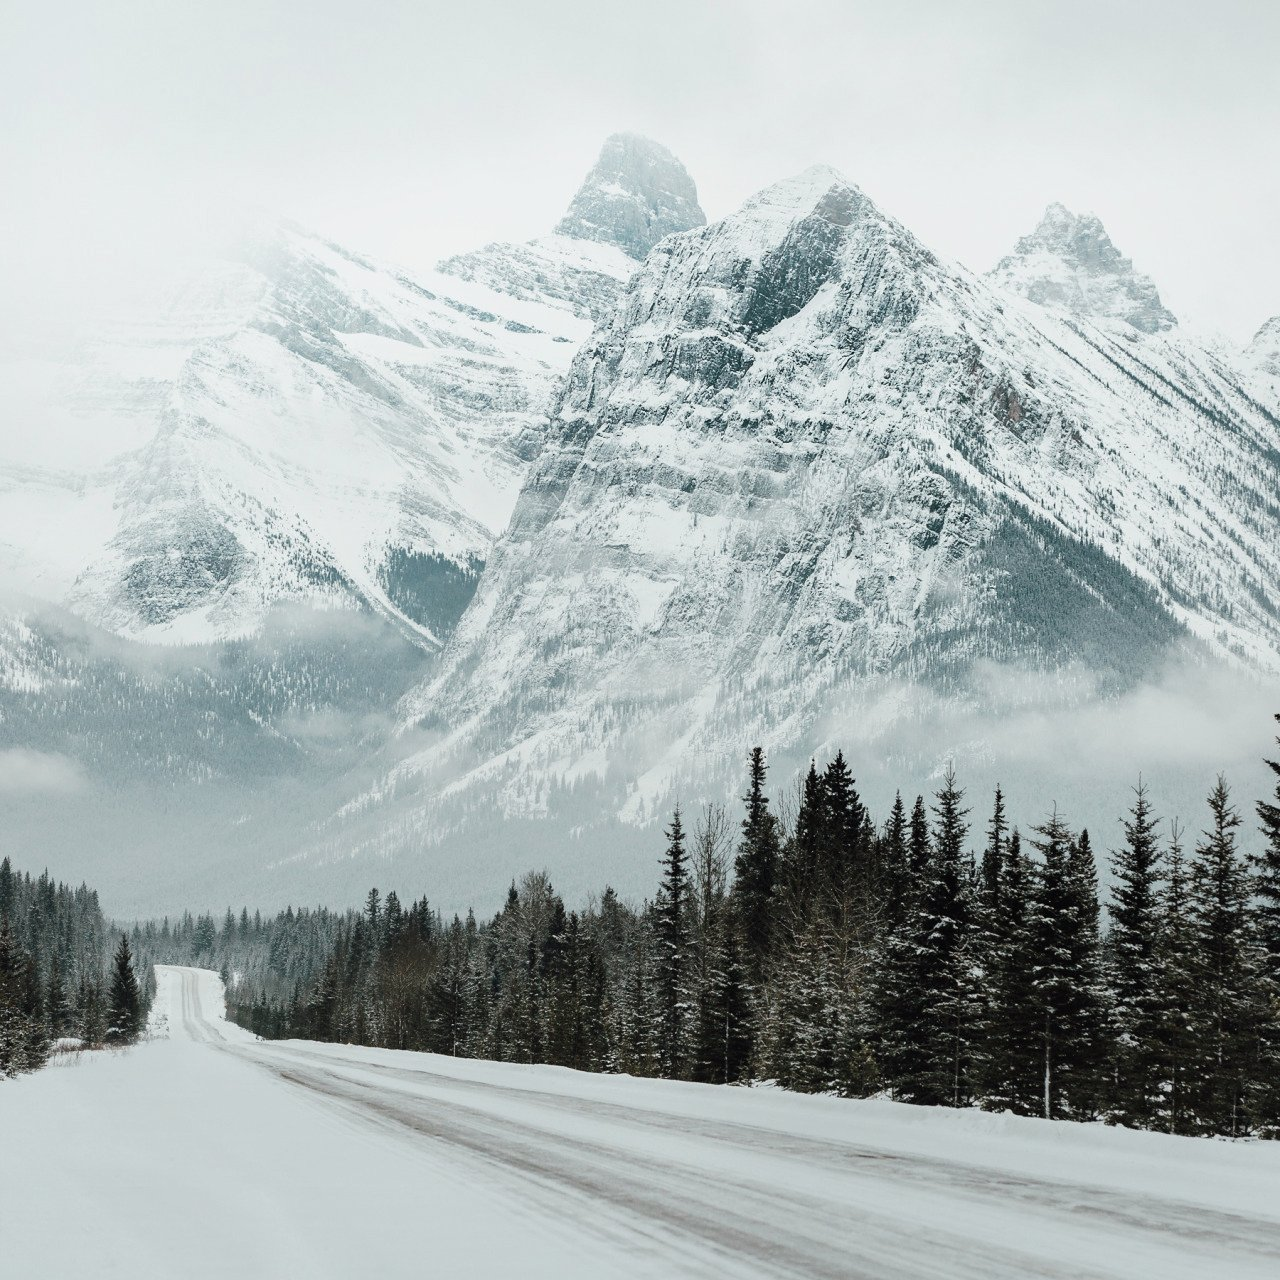 Icefields Parkway �� https://t.co/FcInMj4AEx